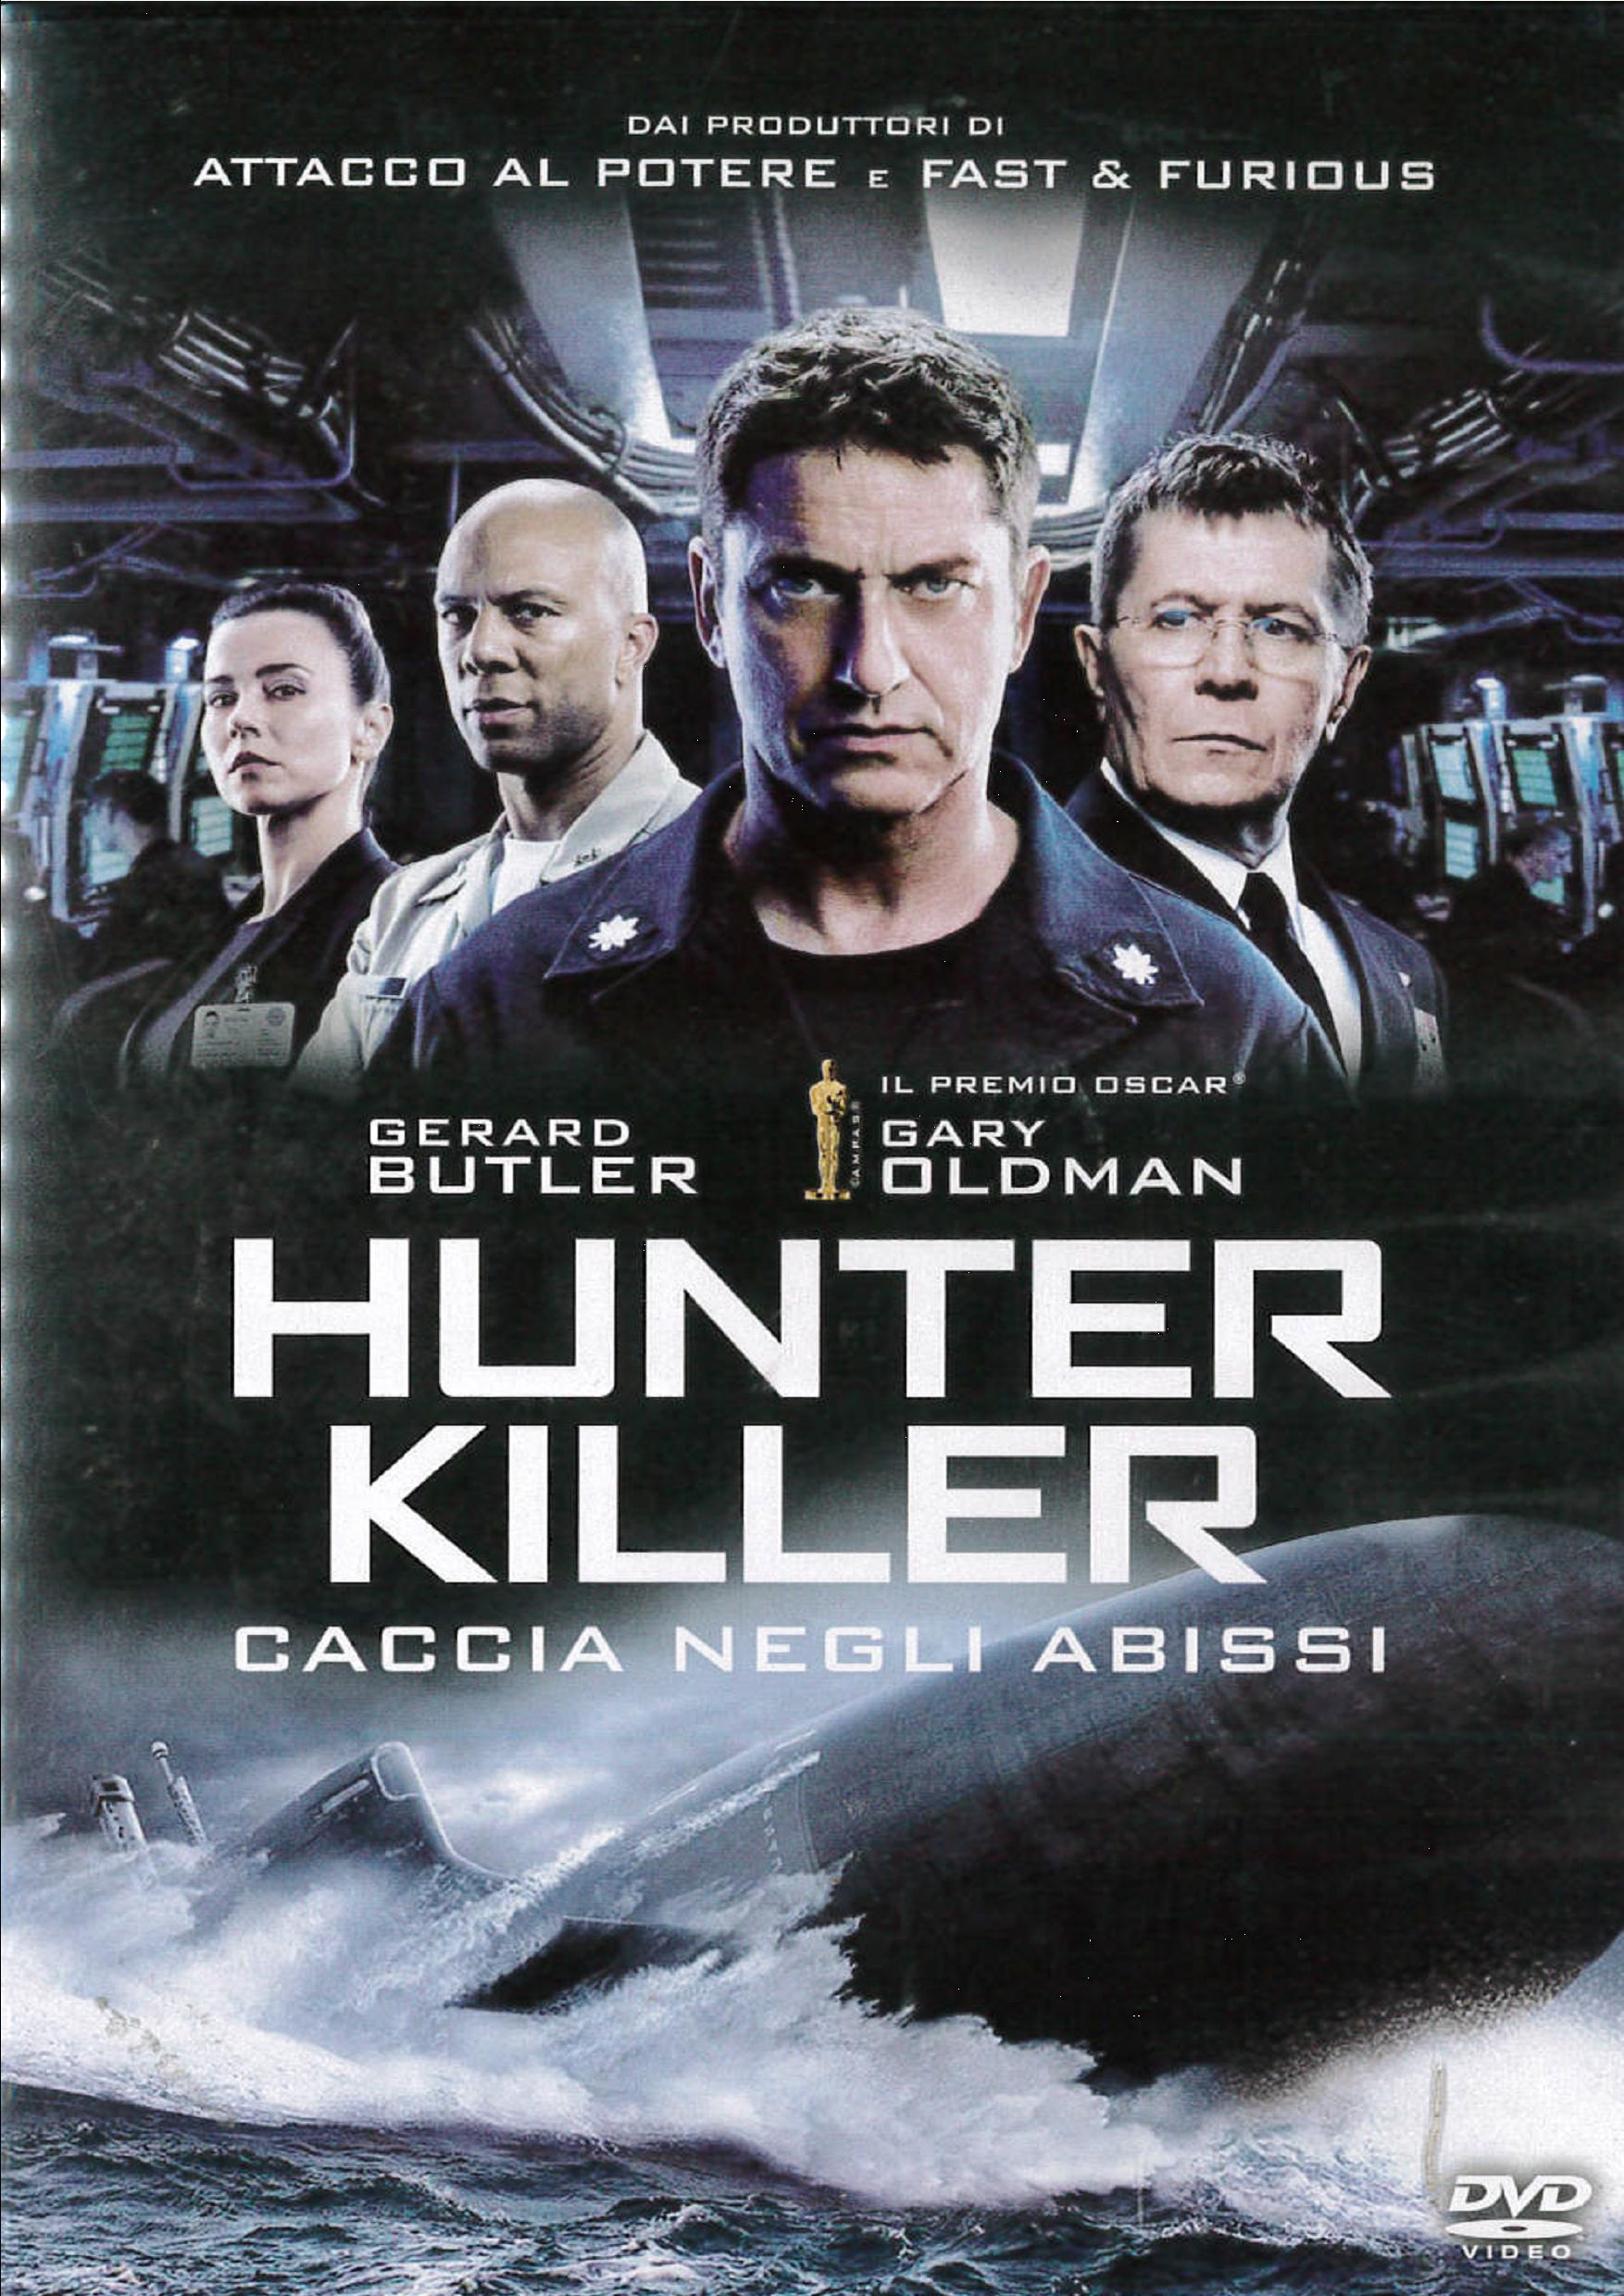 HUNTER KILLER - CACCIA NEGLI ABISSI (DVD)